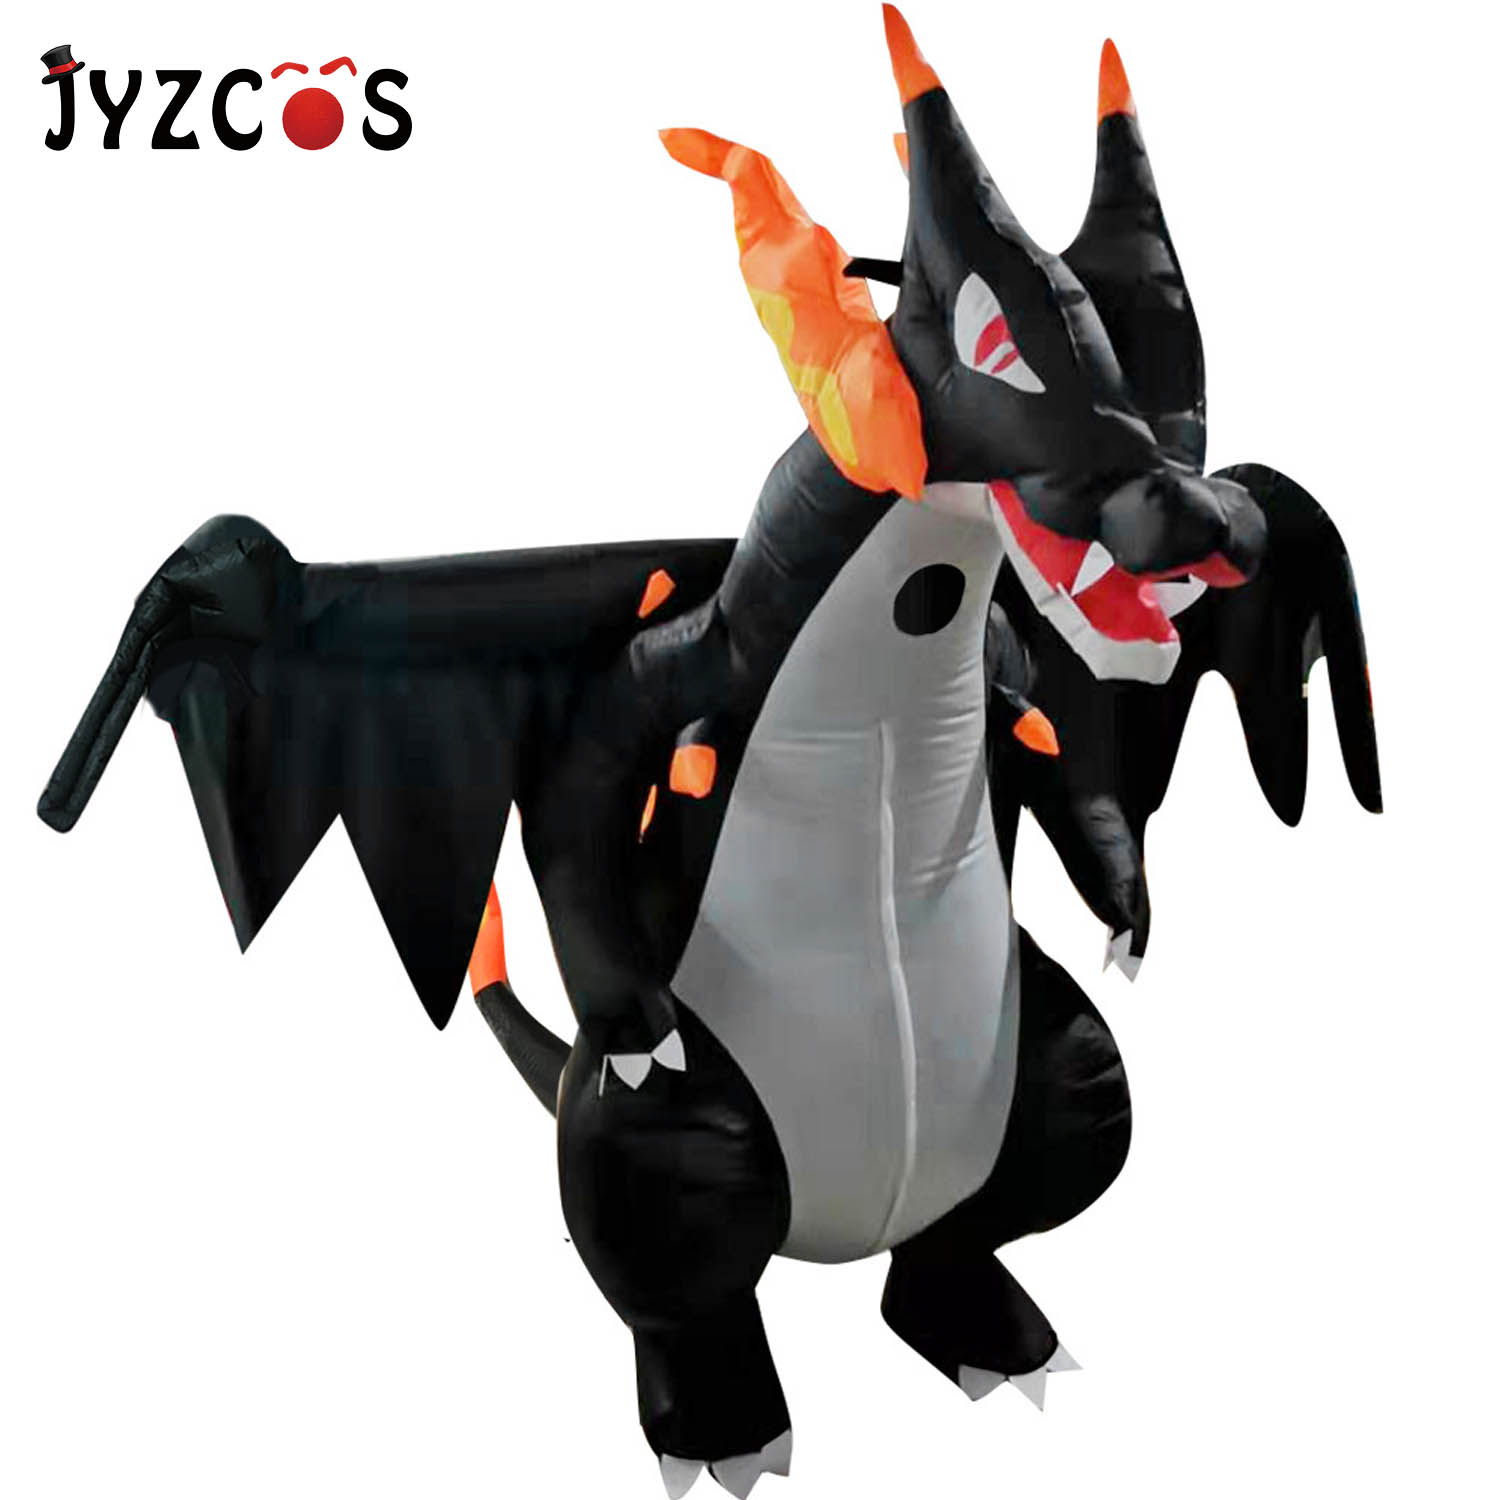 JYZCOS Anime Cospaly Adult Men Spitfire Dinosaur Inflatable Costume Christmas Mascot Adults Halloween Dinosaur Costume For Women